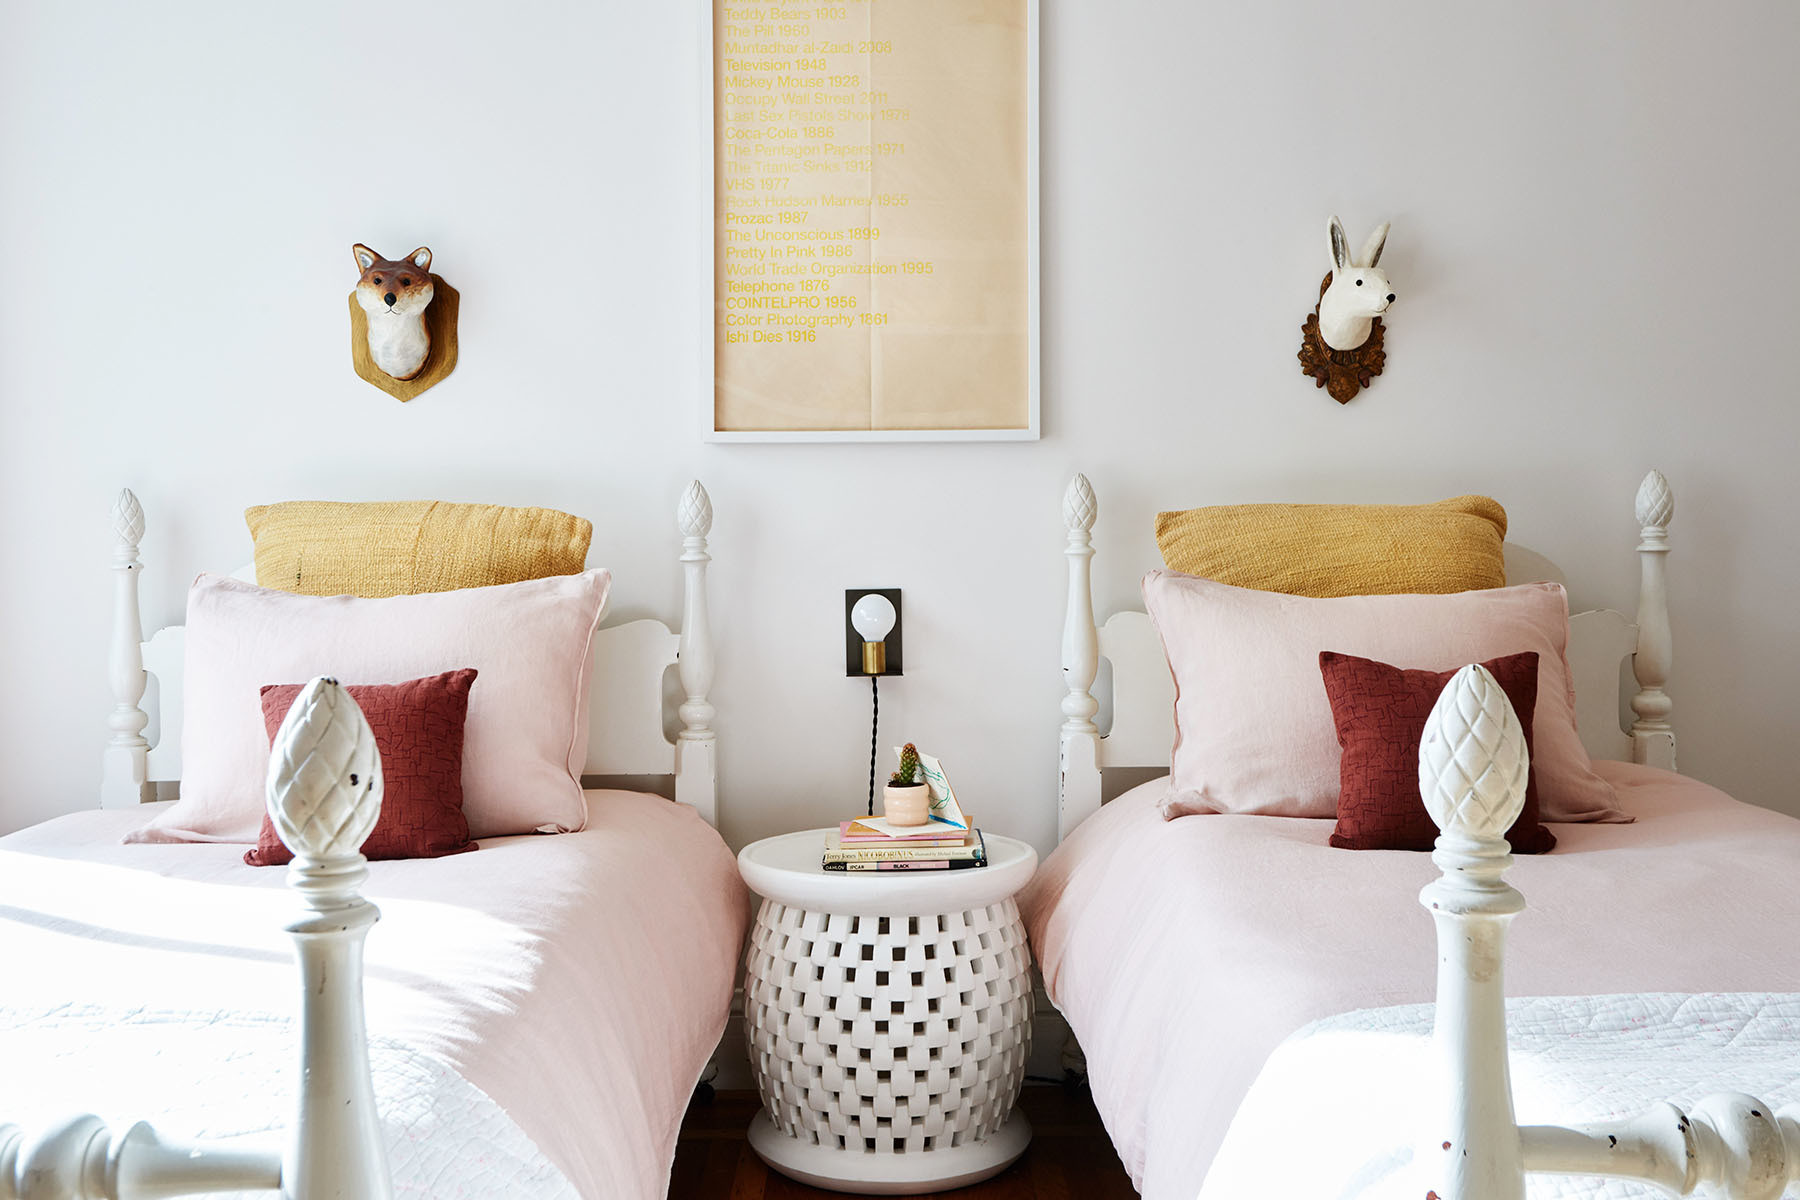 """The girls beds were originally my great grandparents beds,"" says Martinez. ""They were custom-made to be extra long since my great grandfather was very tall."" Serena & Lily Stool 